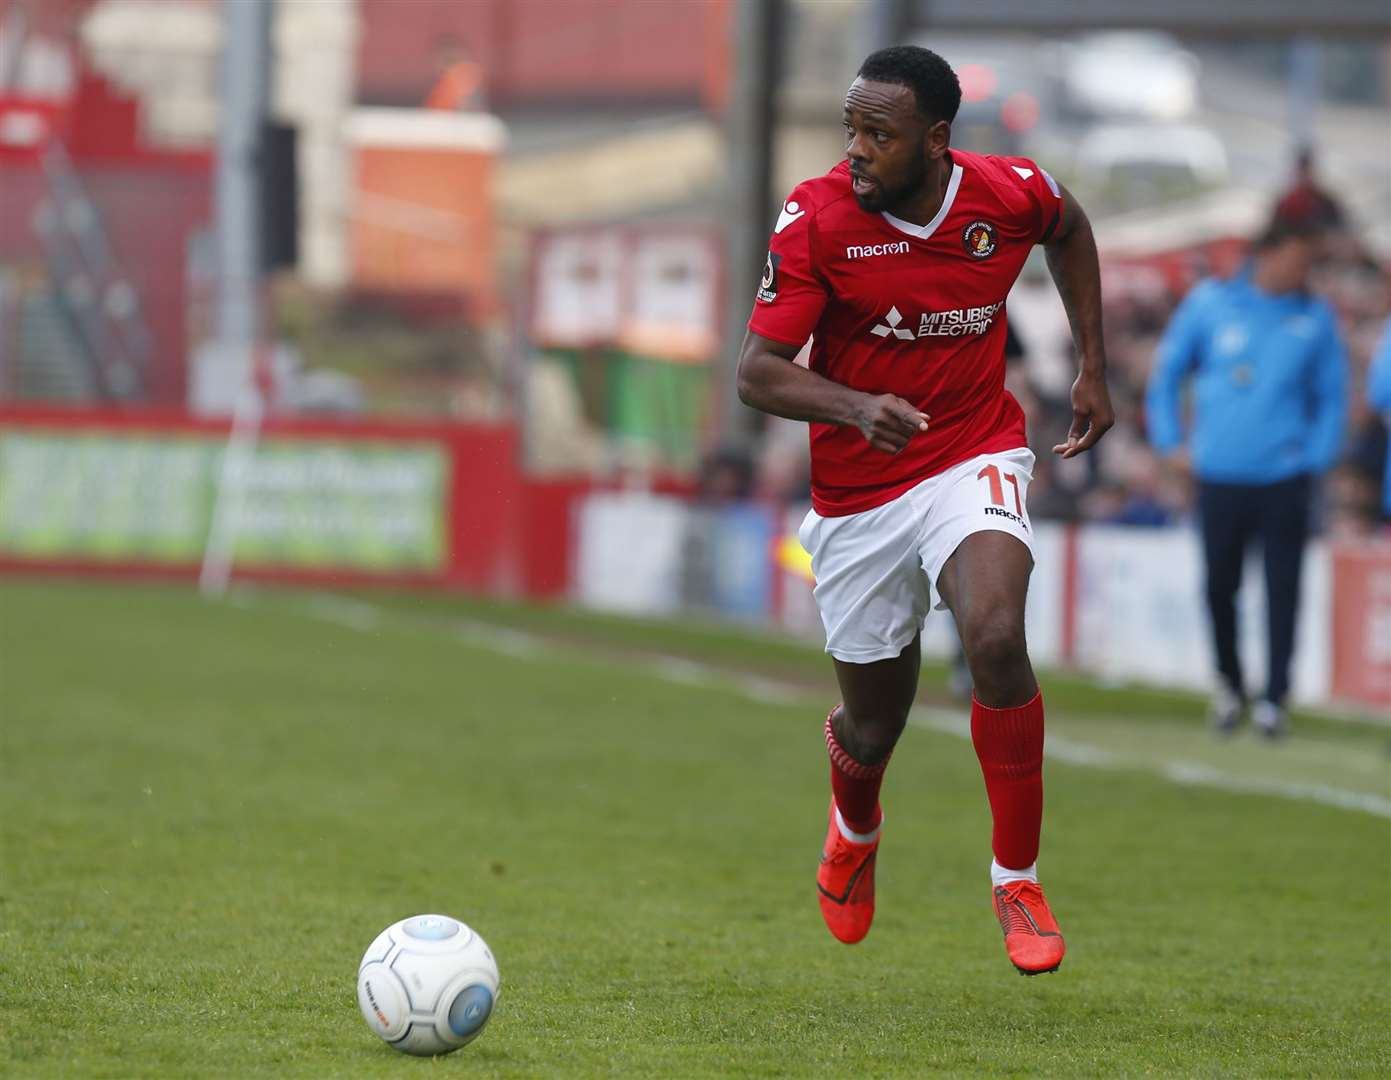 Myles Weston in action for Ebbsfleet United Picture: Andy Jones